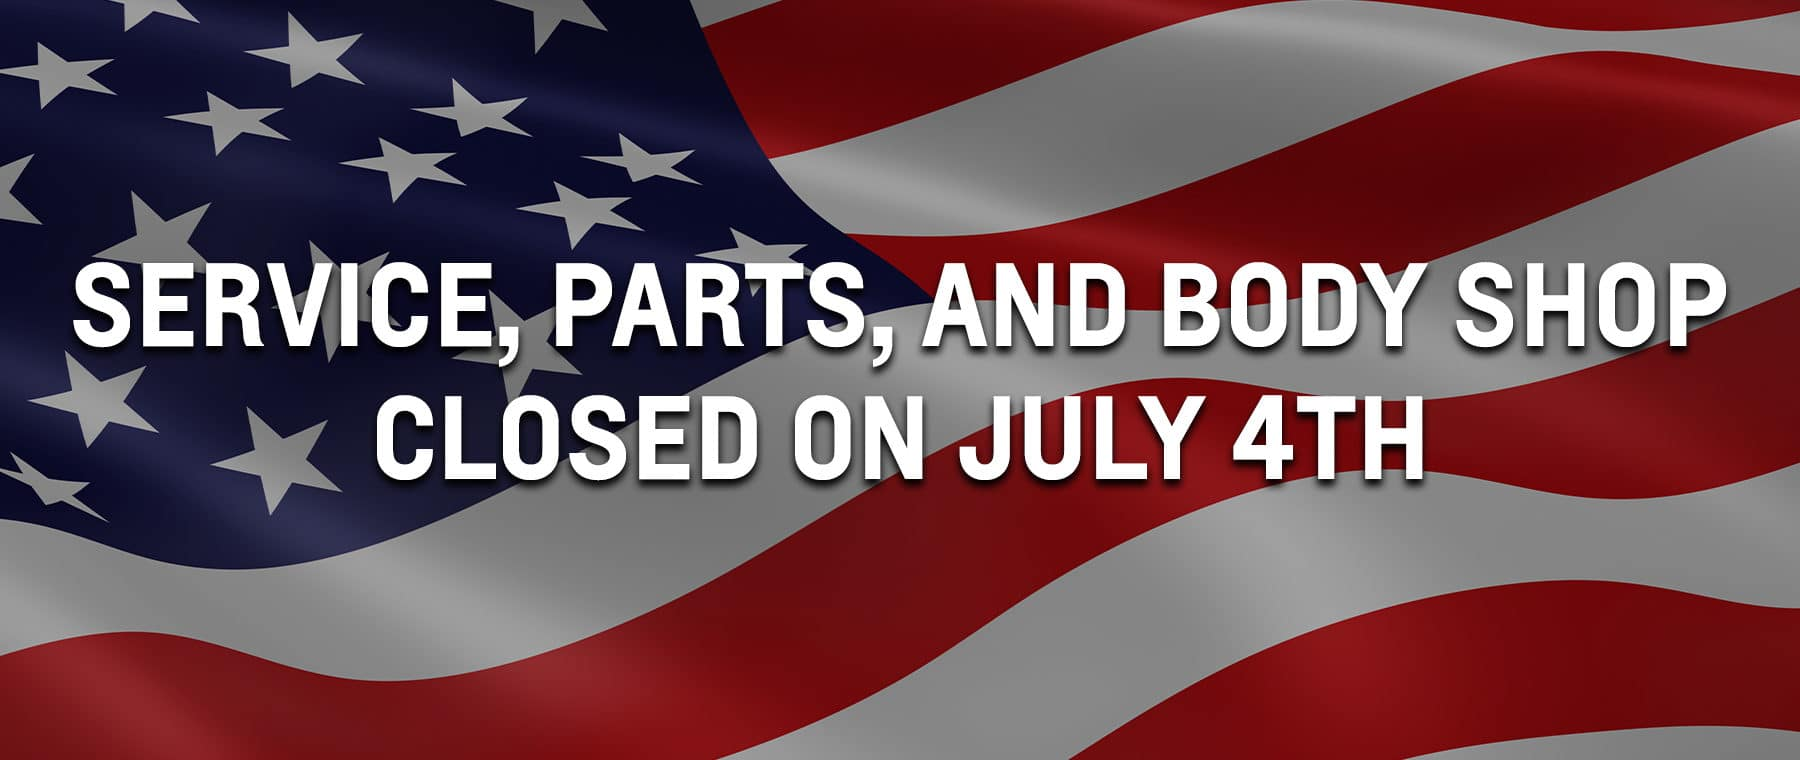 Service, Parts, and Body Shop CLOSED on July 4th